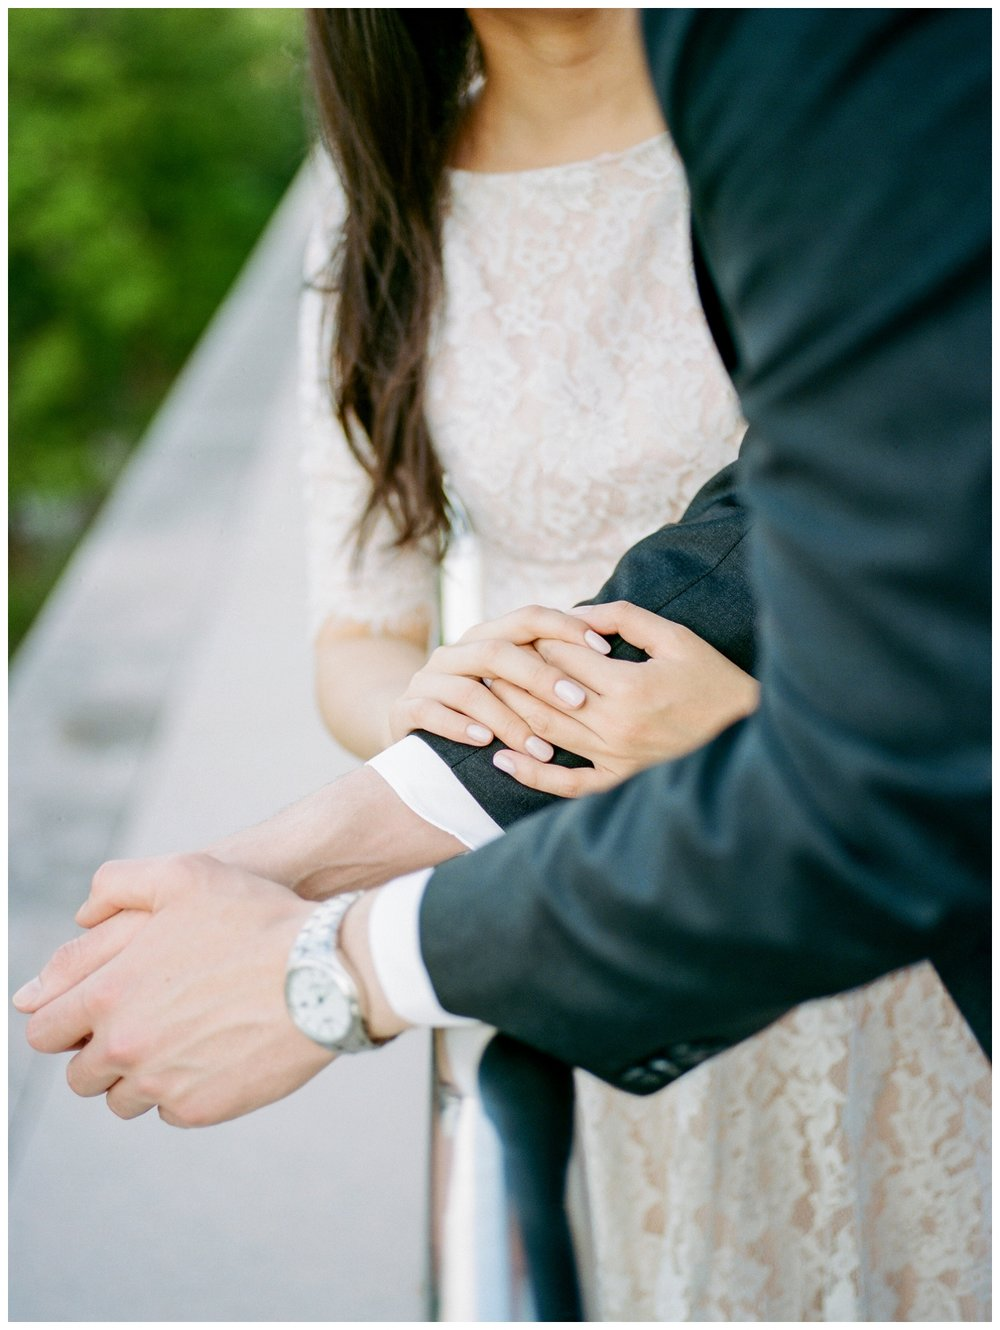 Sweet engagement session at the National Gallery of Art in Washington DC by fine art wedding photographer Lissa Ryan Photography